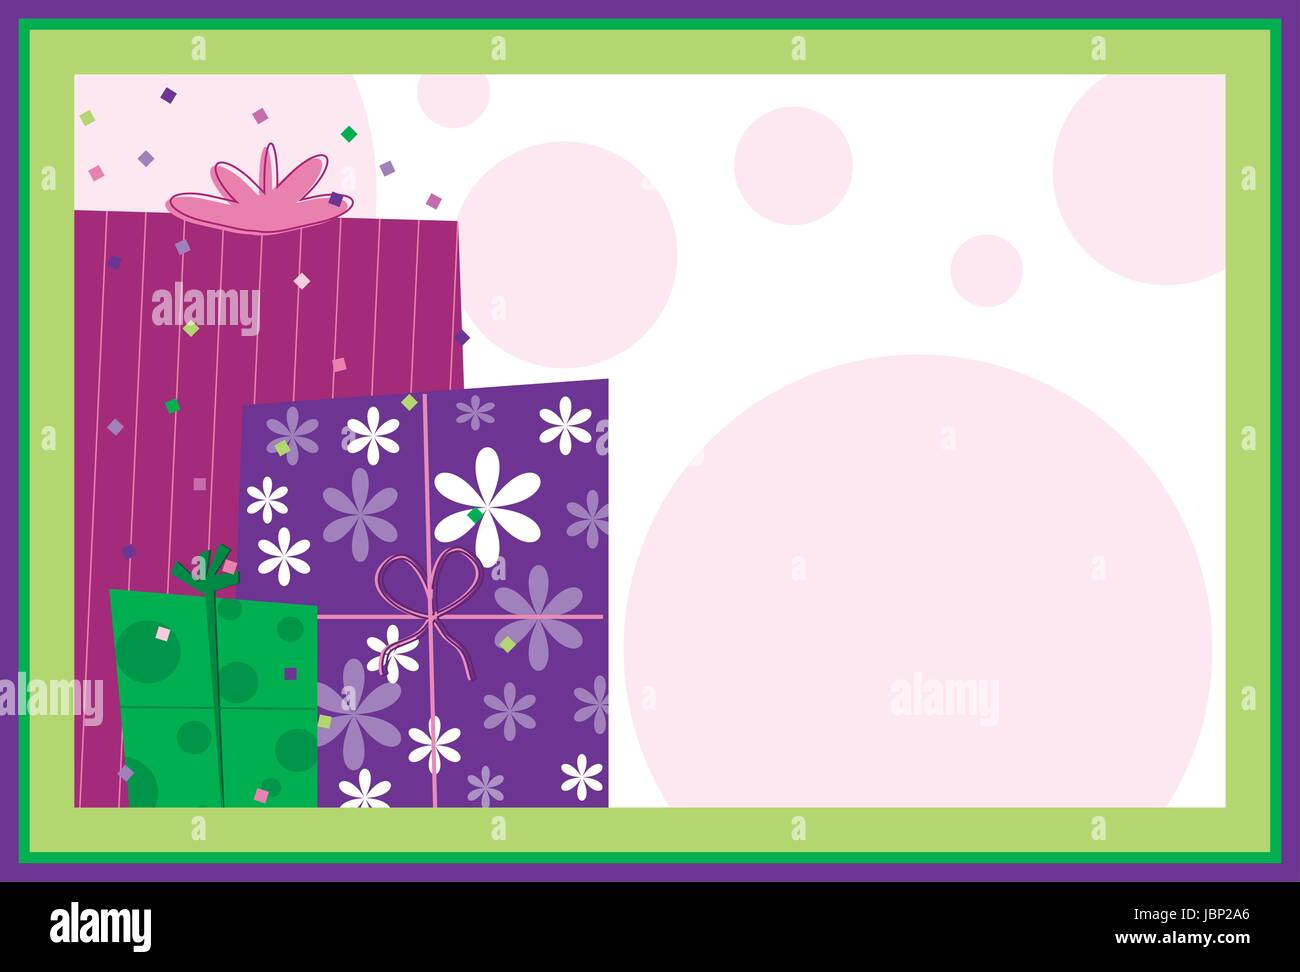 Presents - Birthday Presents on colorful confetti and polka dot background Stock Vector